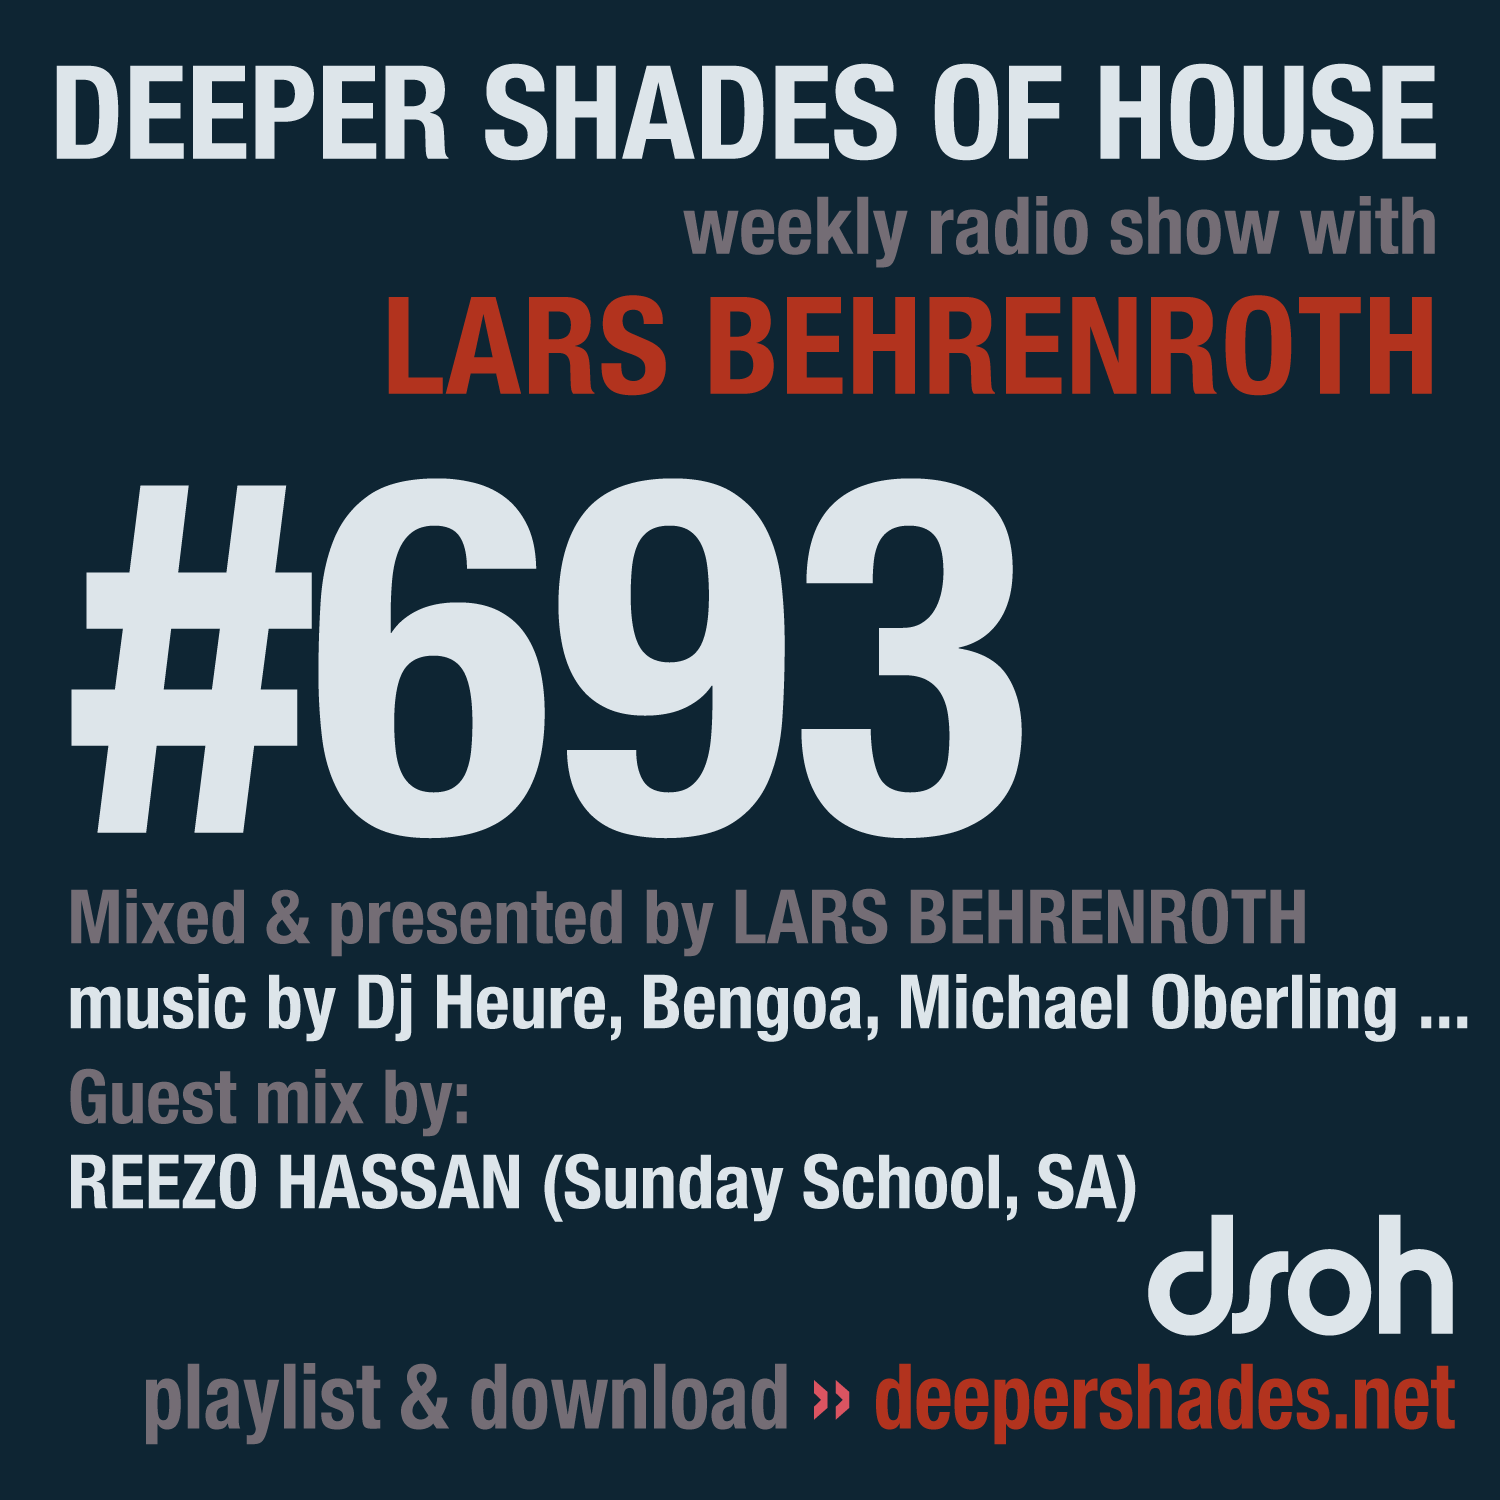 Deeper Shades Of House #693 - guest mix by REEZO HASSAN